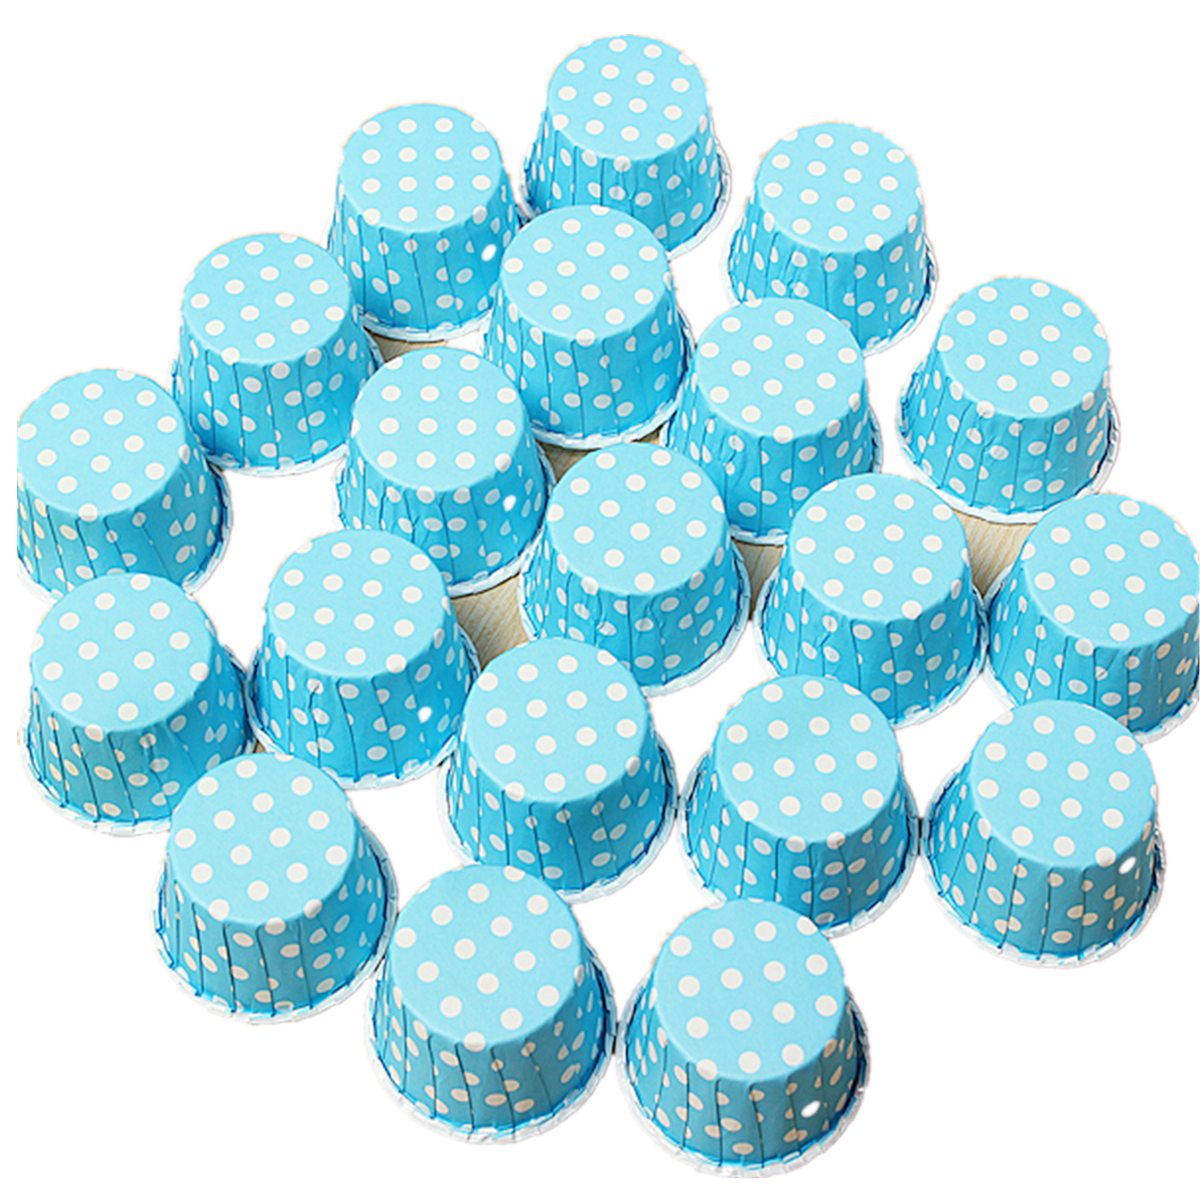 20pcs Cupcake Liner Muffin Candy Nut Snack Greaseproof Dessert Baking Cups 6 Colors